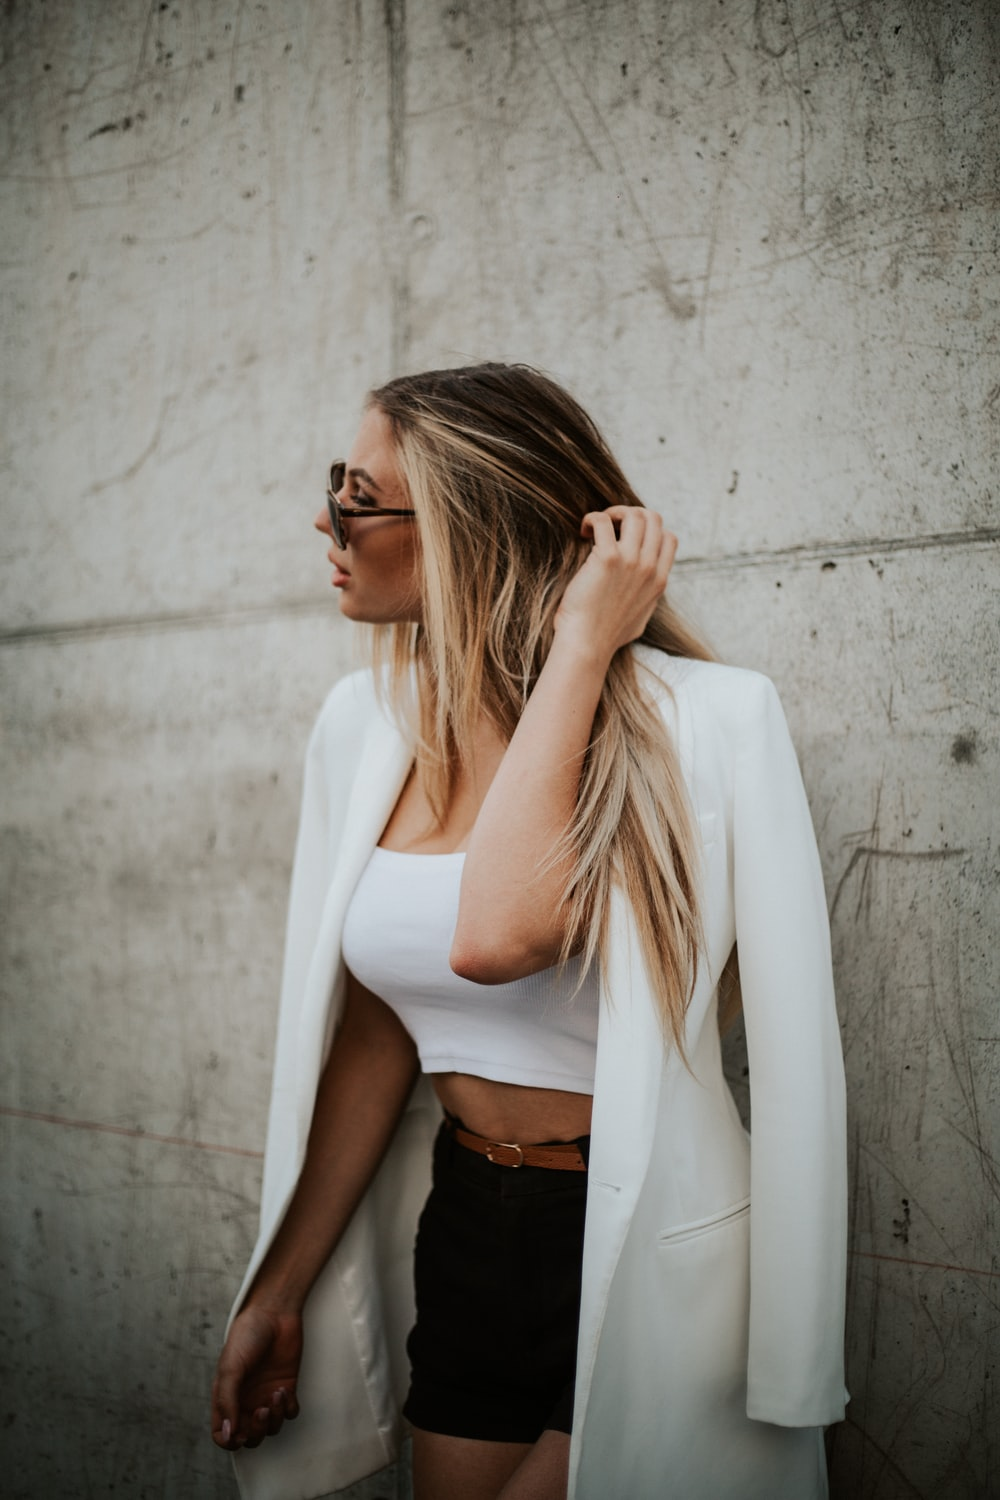 woman in white long sleeve shirt and black skirt